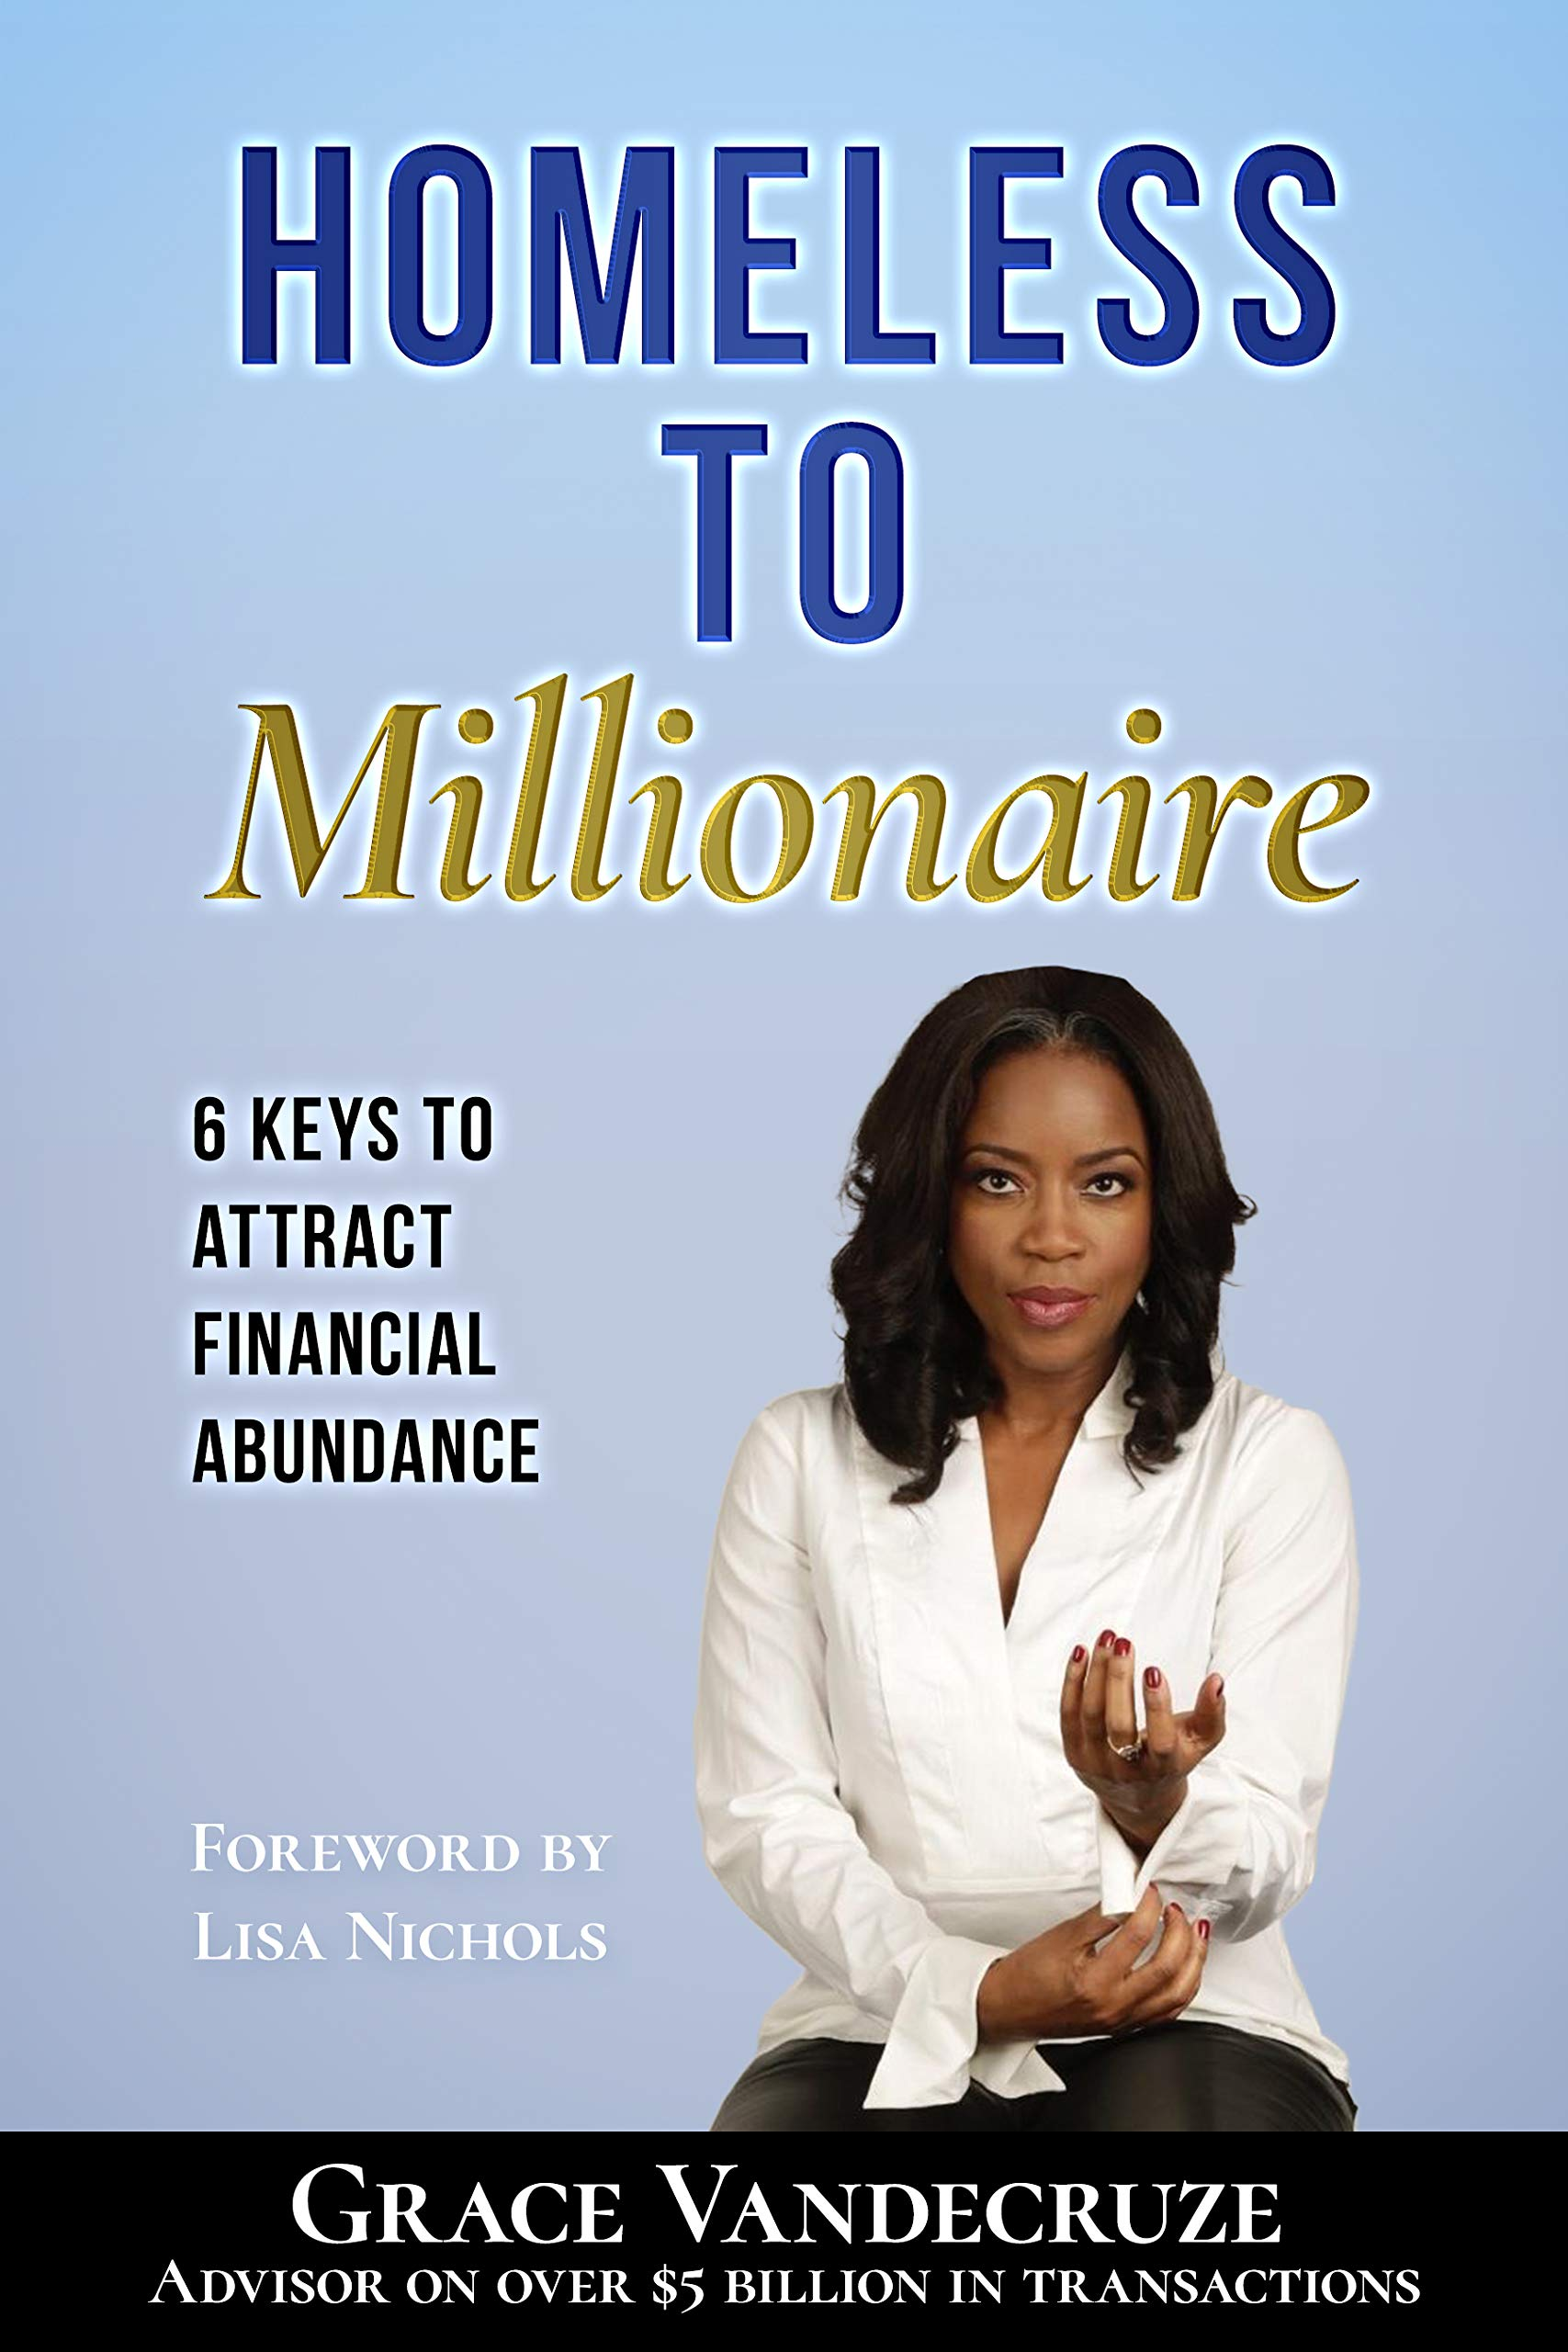 Homeless to Millionaire : 6 Steps to UPLIFT your Climb to Financial Wellness